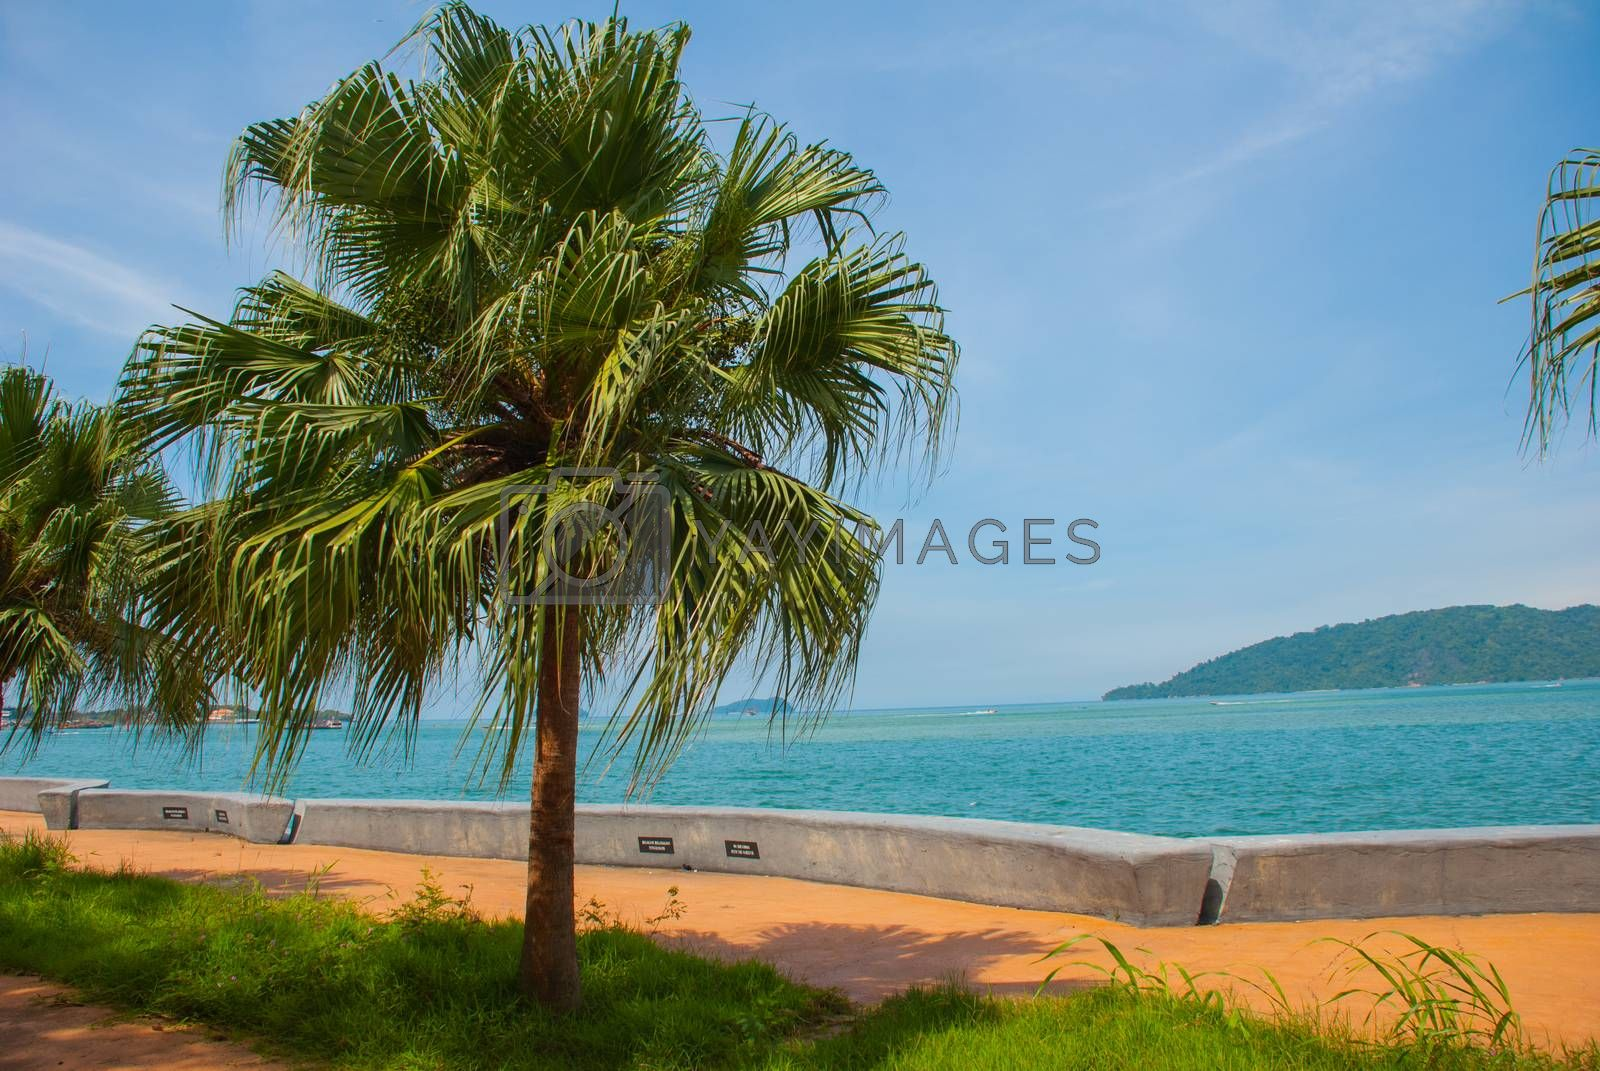 KOTA KINABALU, SABAH, MALAYSIA - MARCH 2017: The Central promenade with palm trees by the sea.